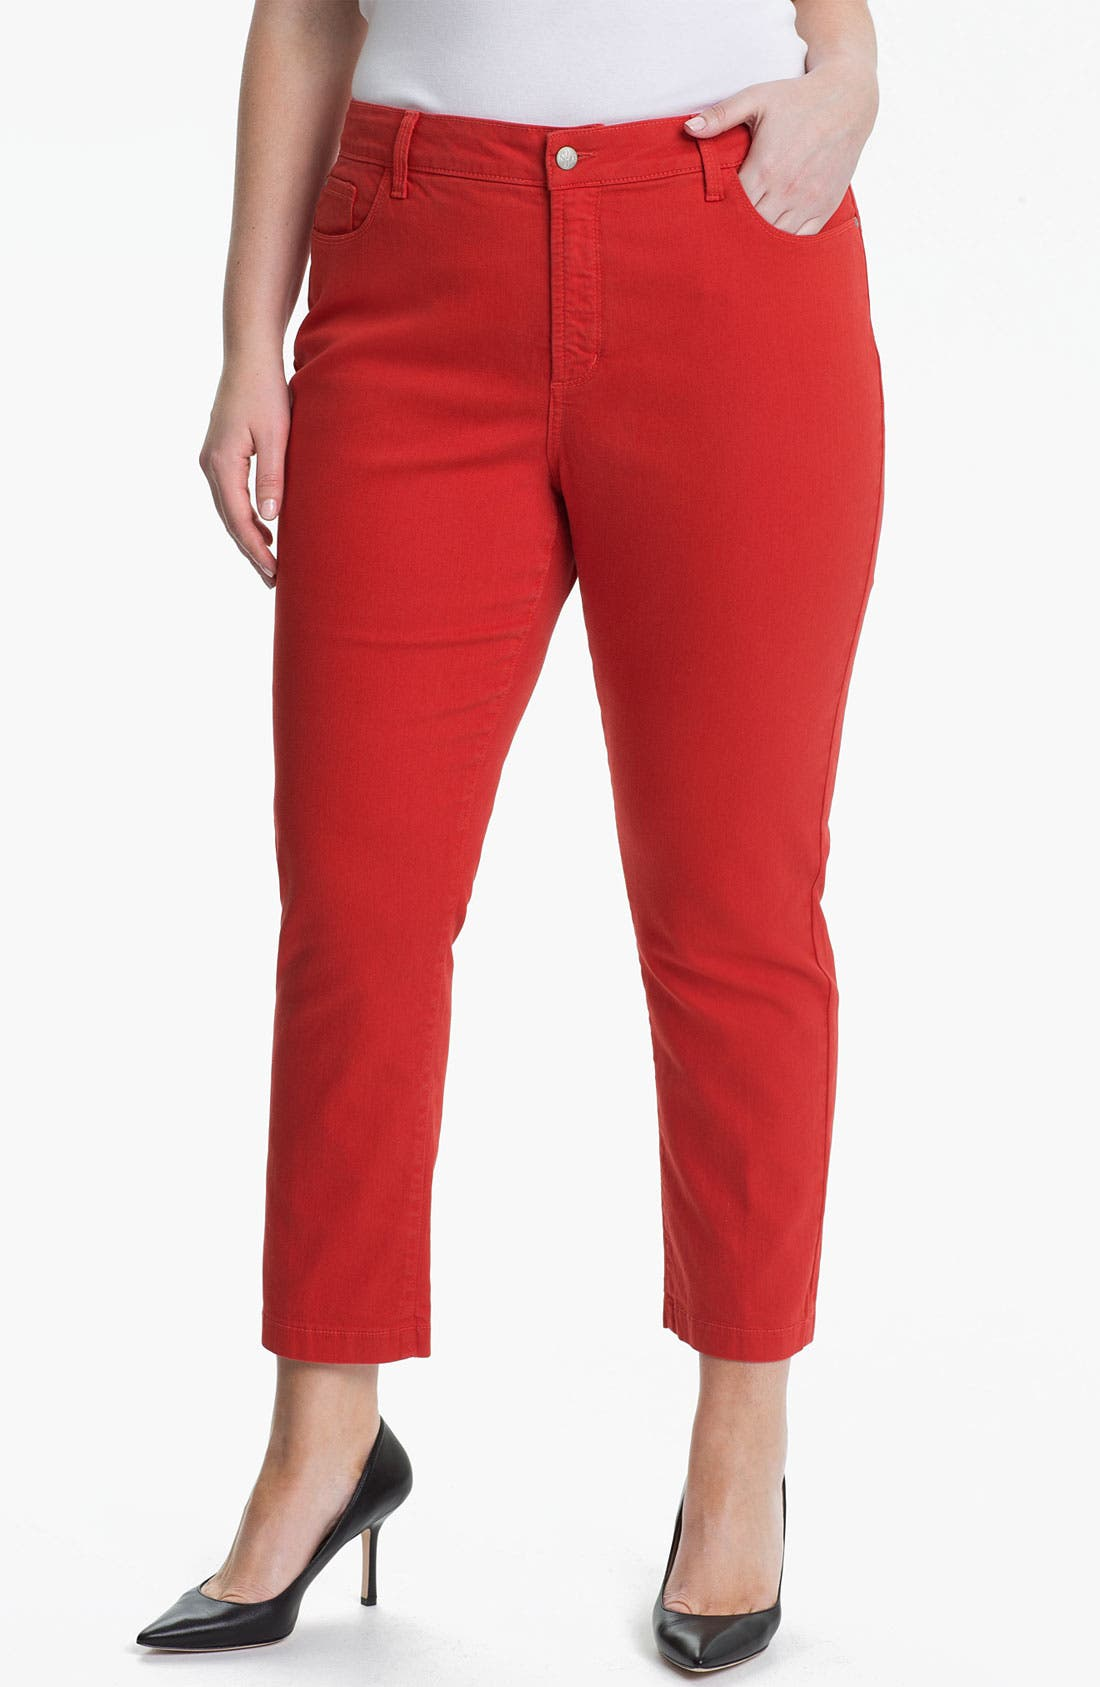 Alternate Image 1 Selected - NYDJ 'Audrey' Stretch Ankle Straight Leg Pants (Plus Size)